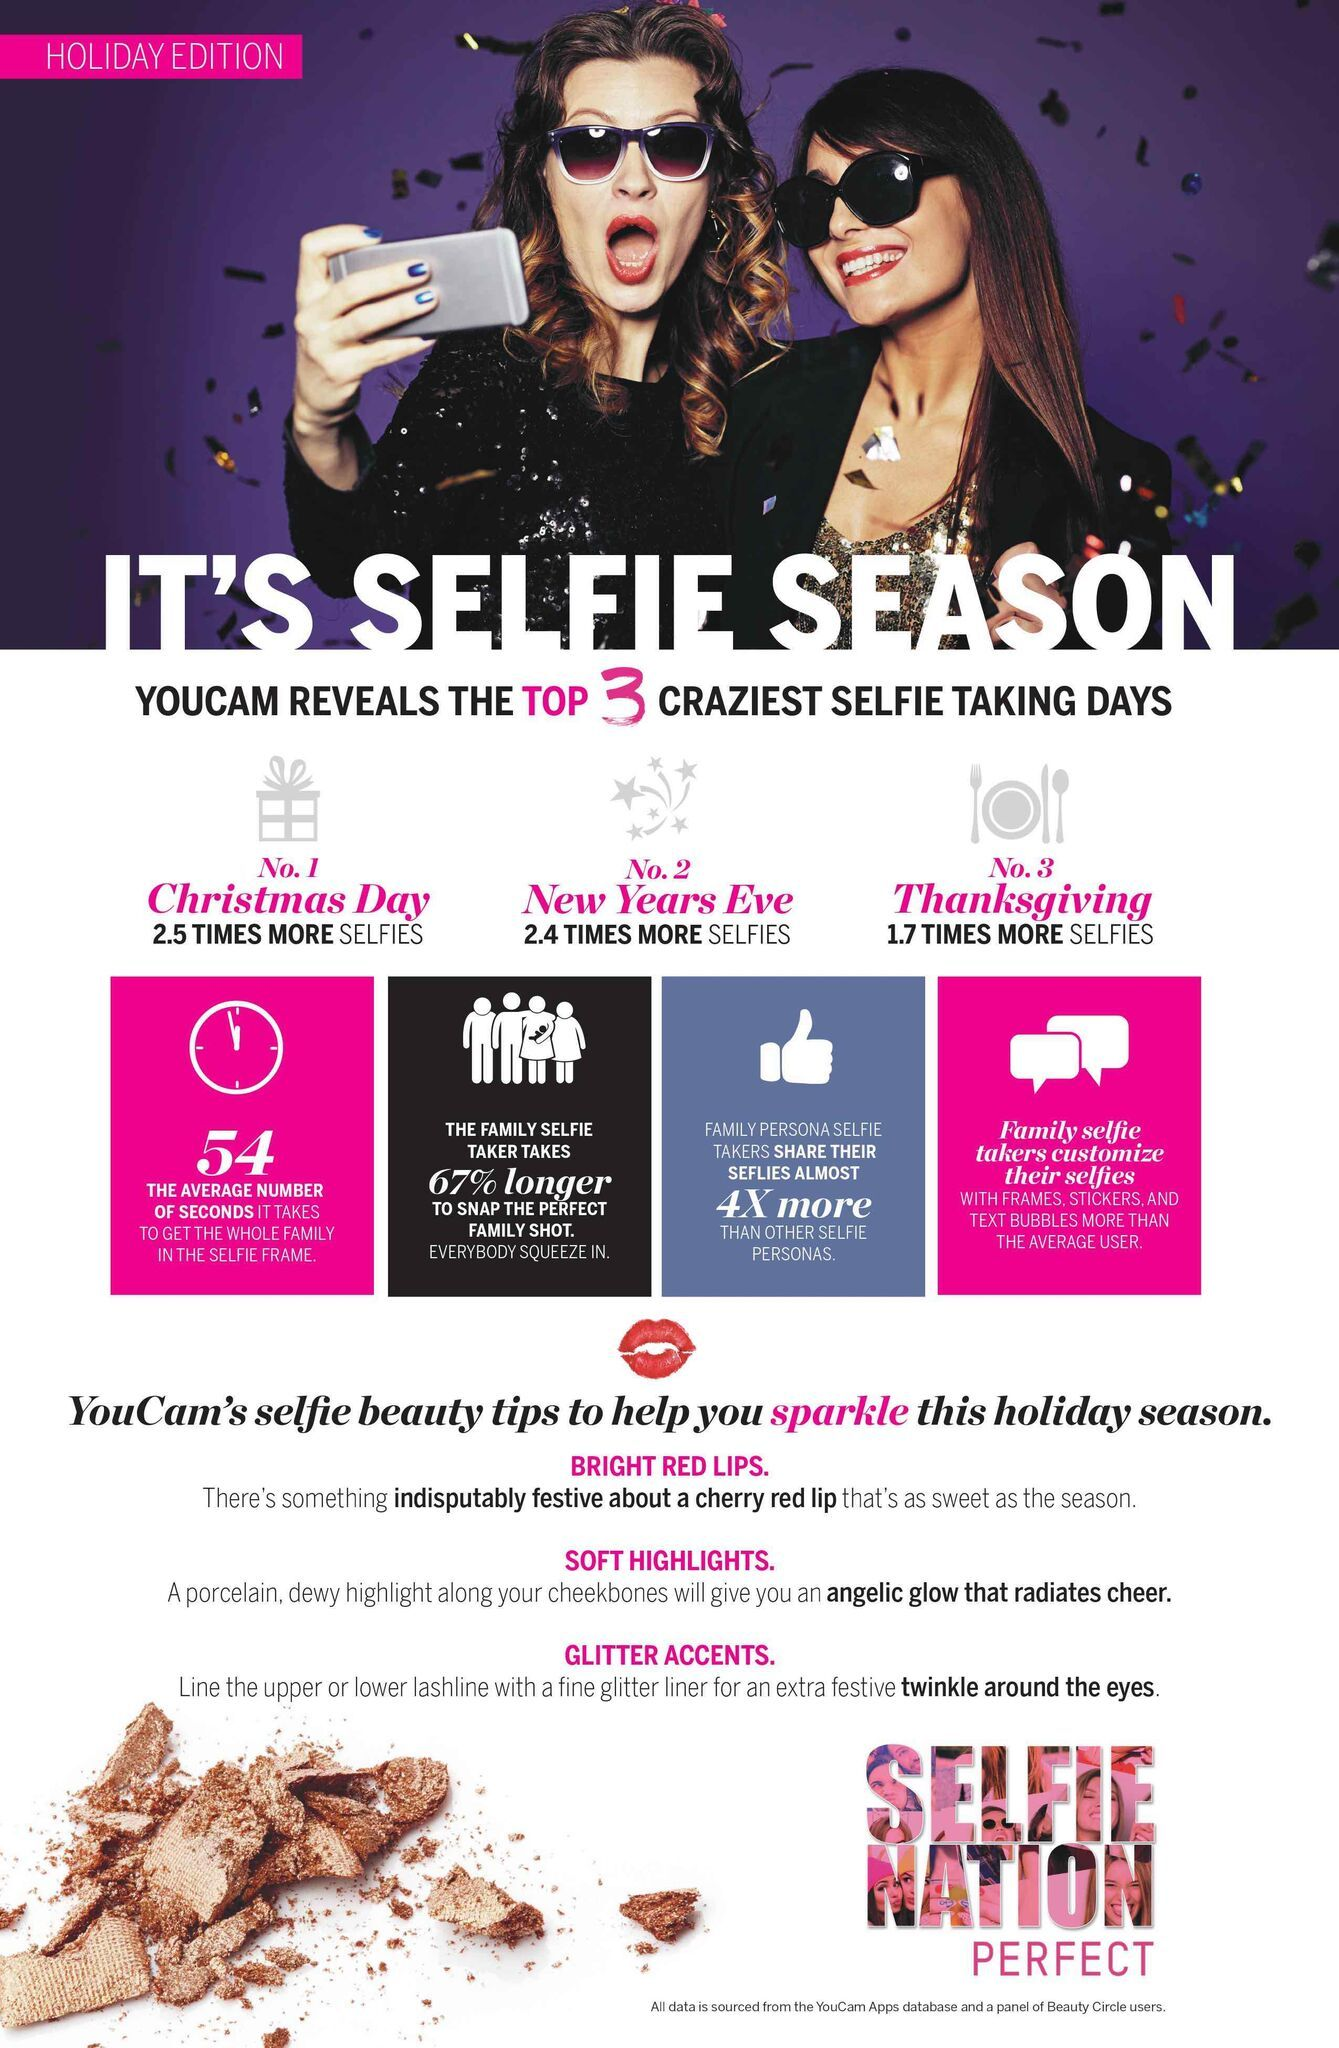 Perfect Corp brings you mobile beauty with top selfie camera YouCam